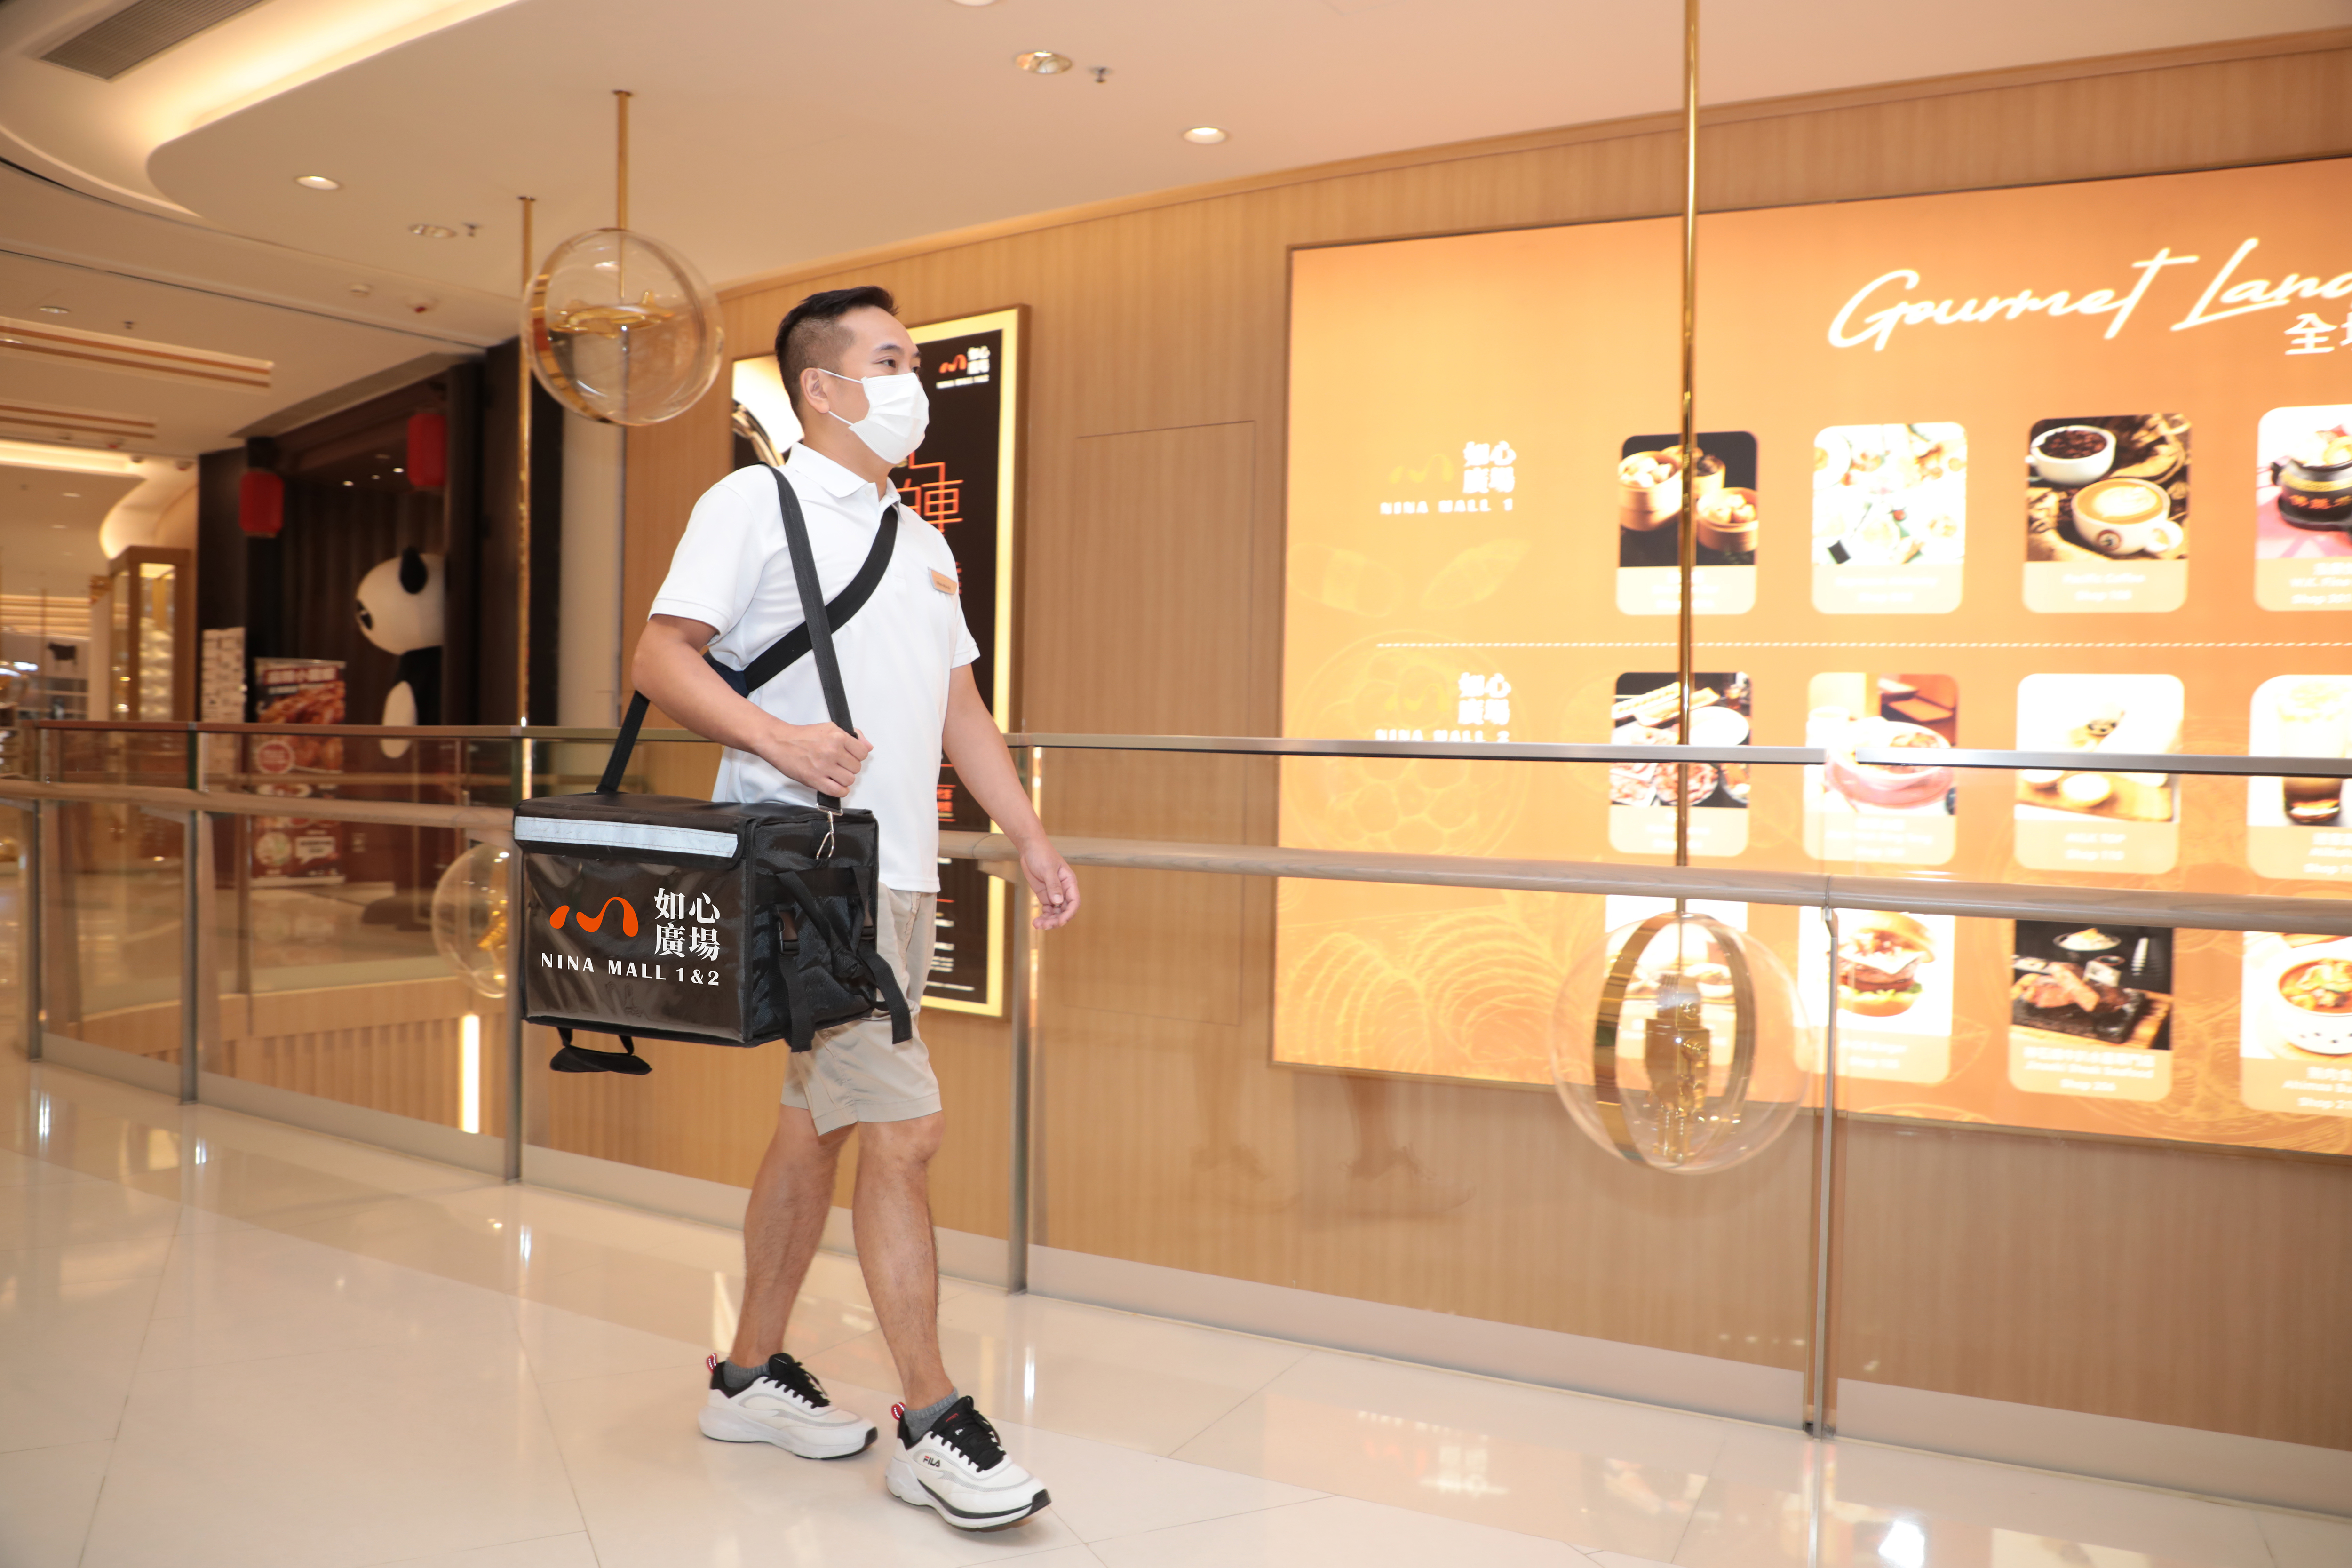 Chinachem Group Shopping Arcades Adopt Additional Tenant Support Measures